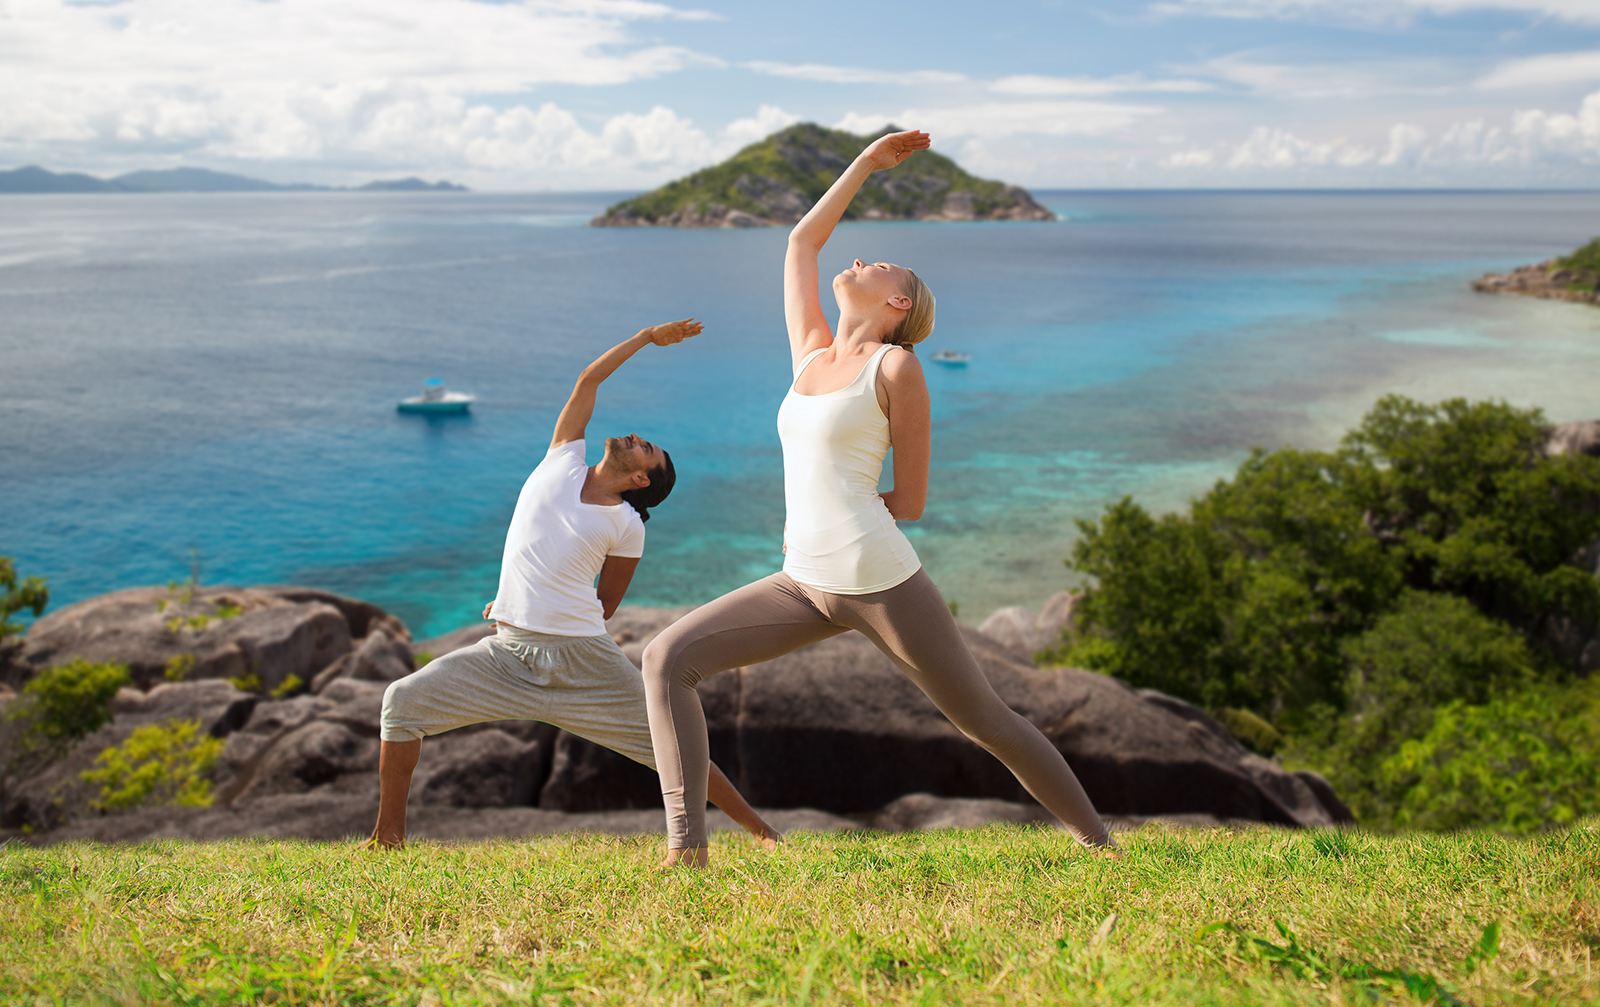 Women Doing Yoga | Health, Happiness, and The Many Other Benefits of Yoga